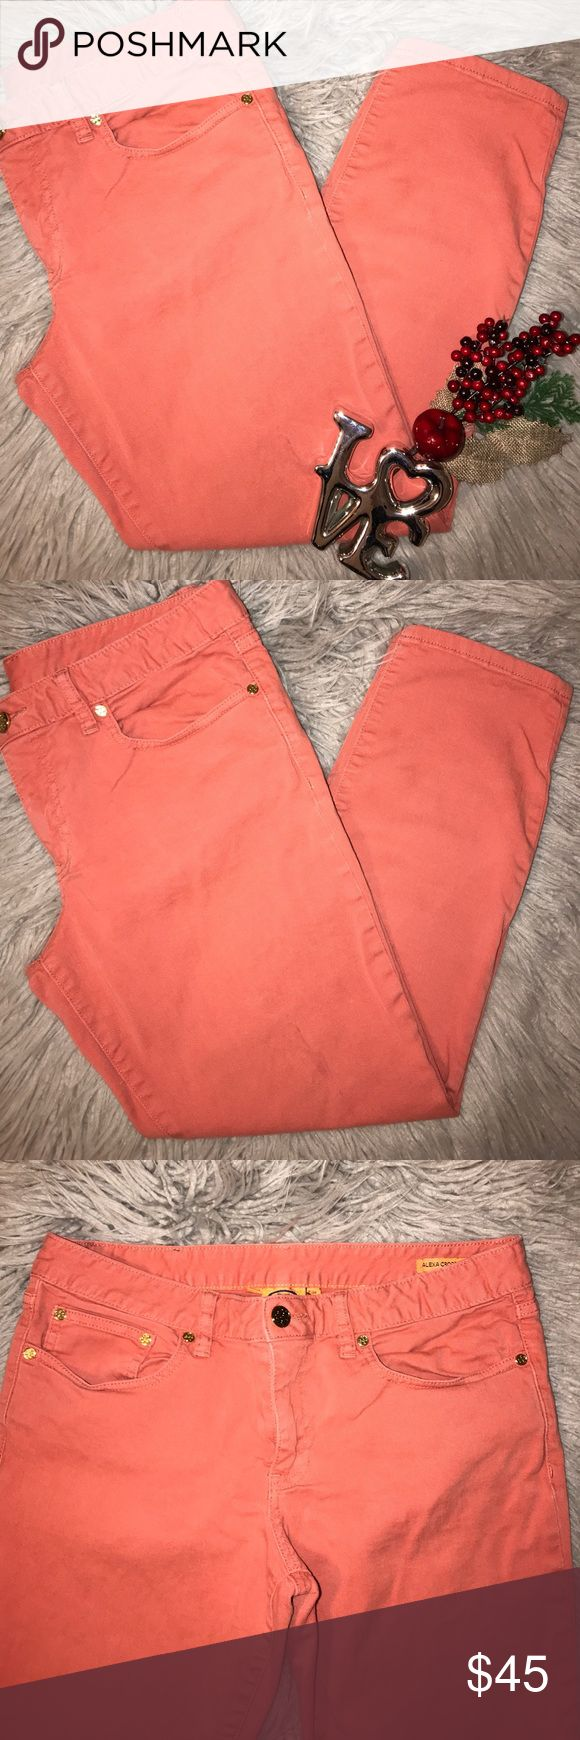 TORY BURCH Coral skinny jeans size 30 Great condition size 30 coral color skinny Tory Burch Jeans Skinny